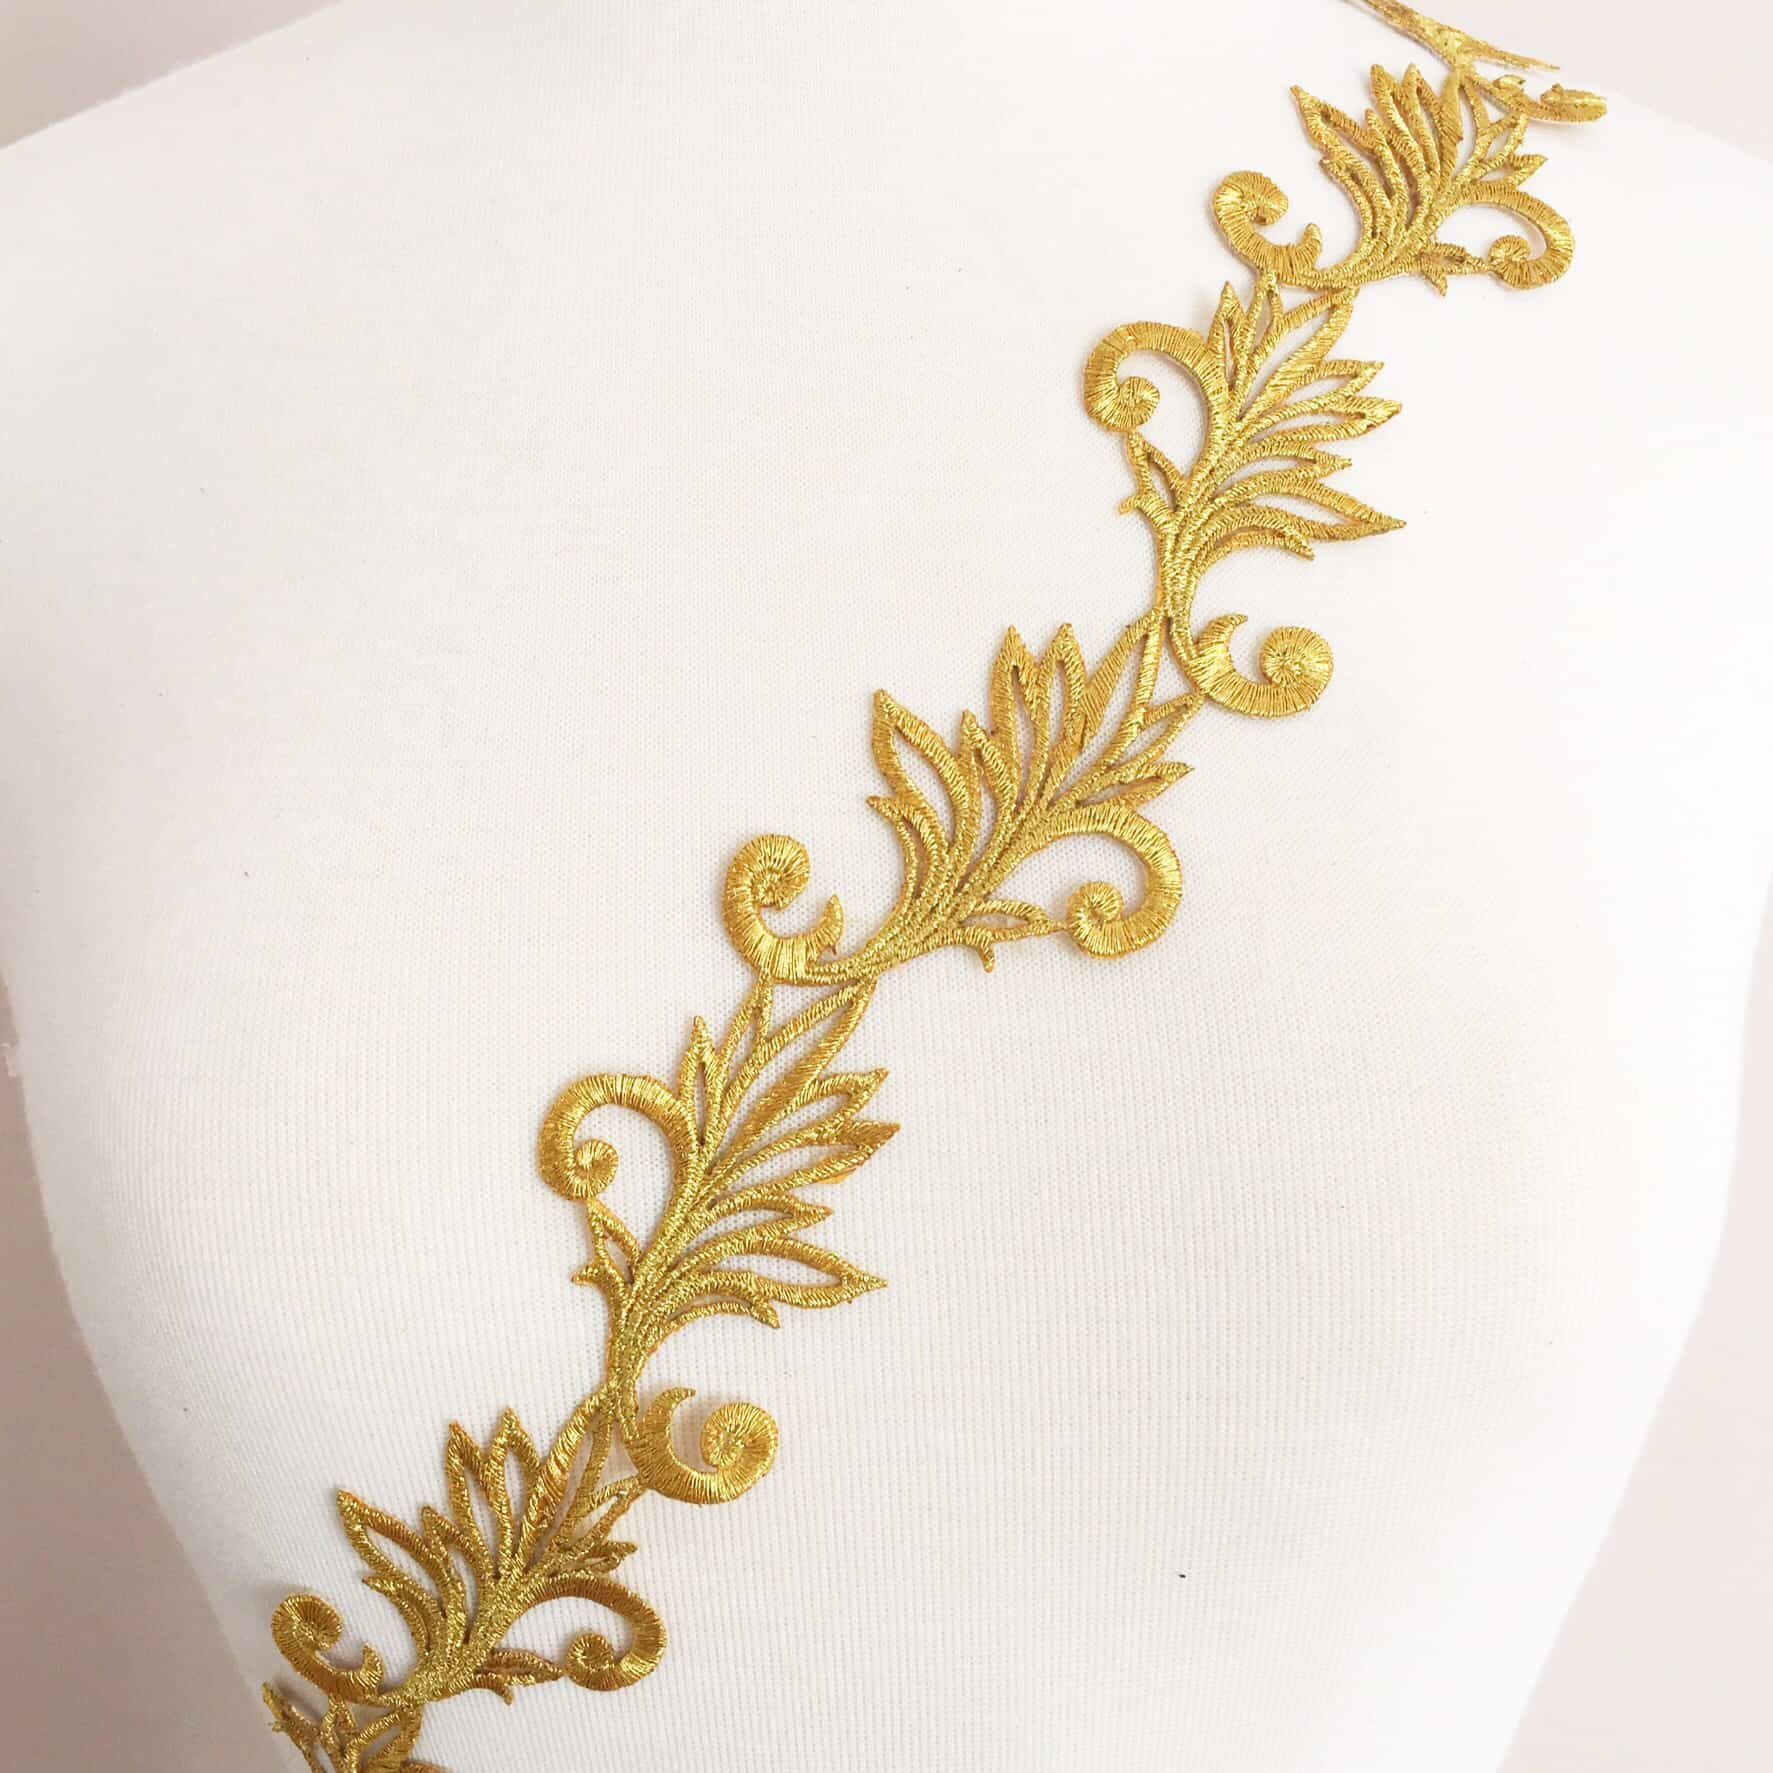 Embroidered renaissance leaf scroll trim shine